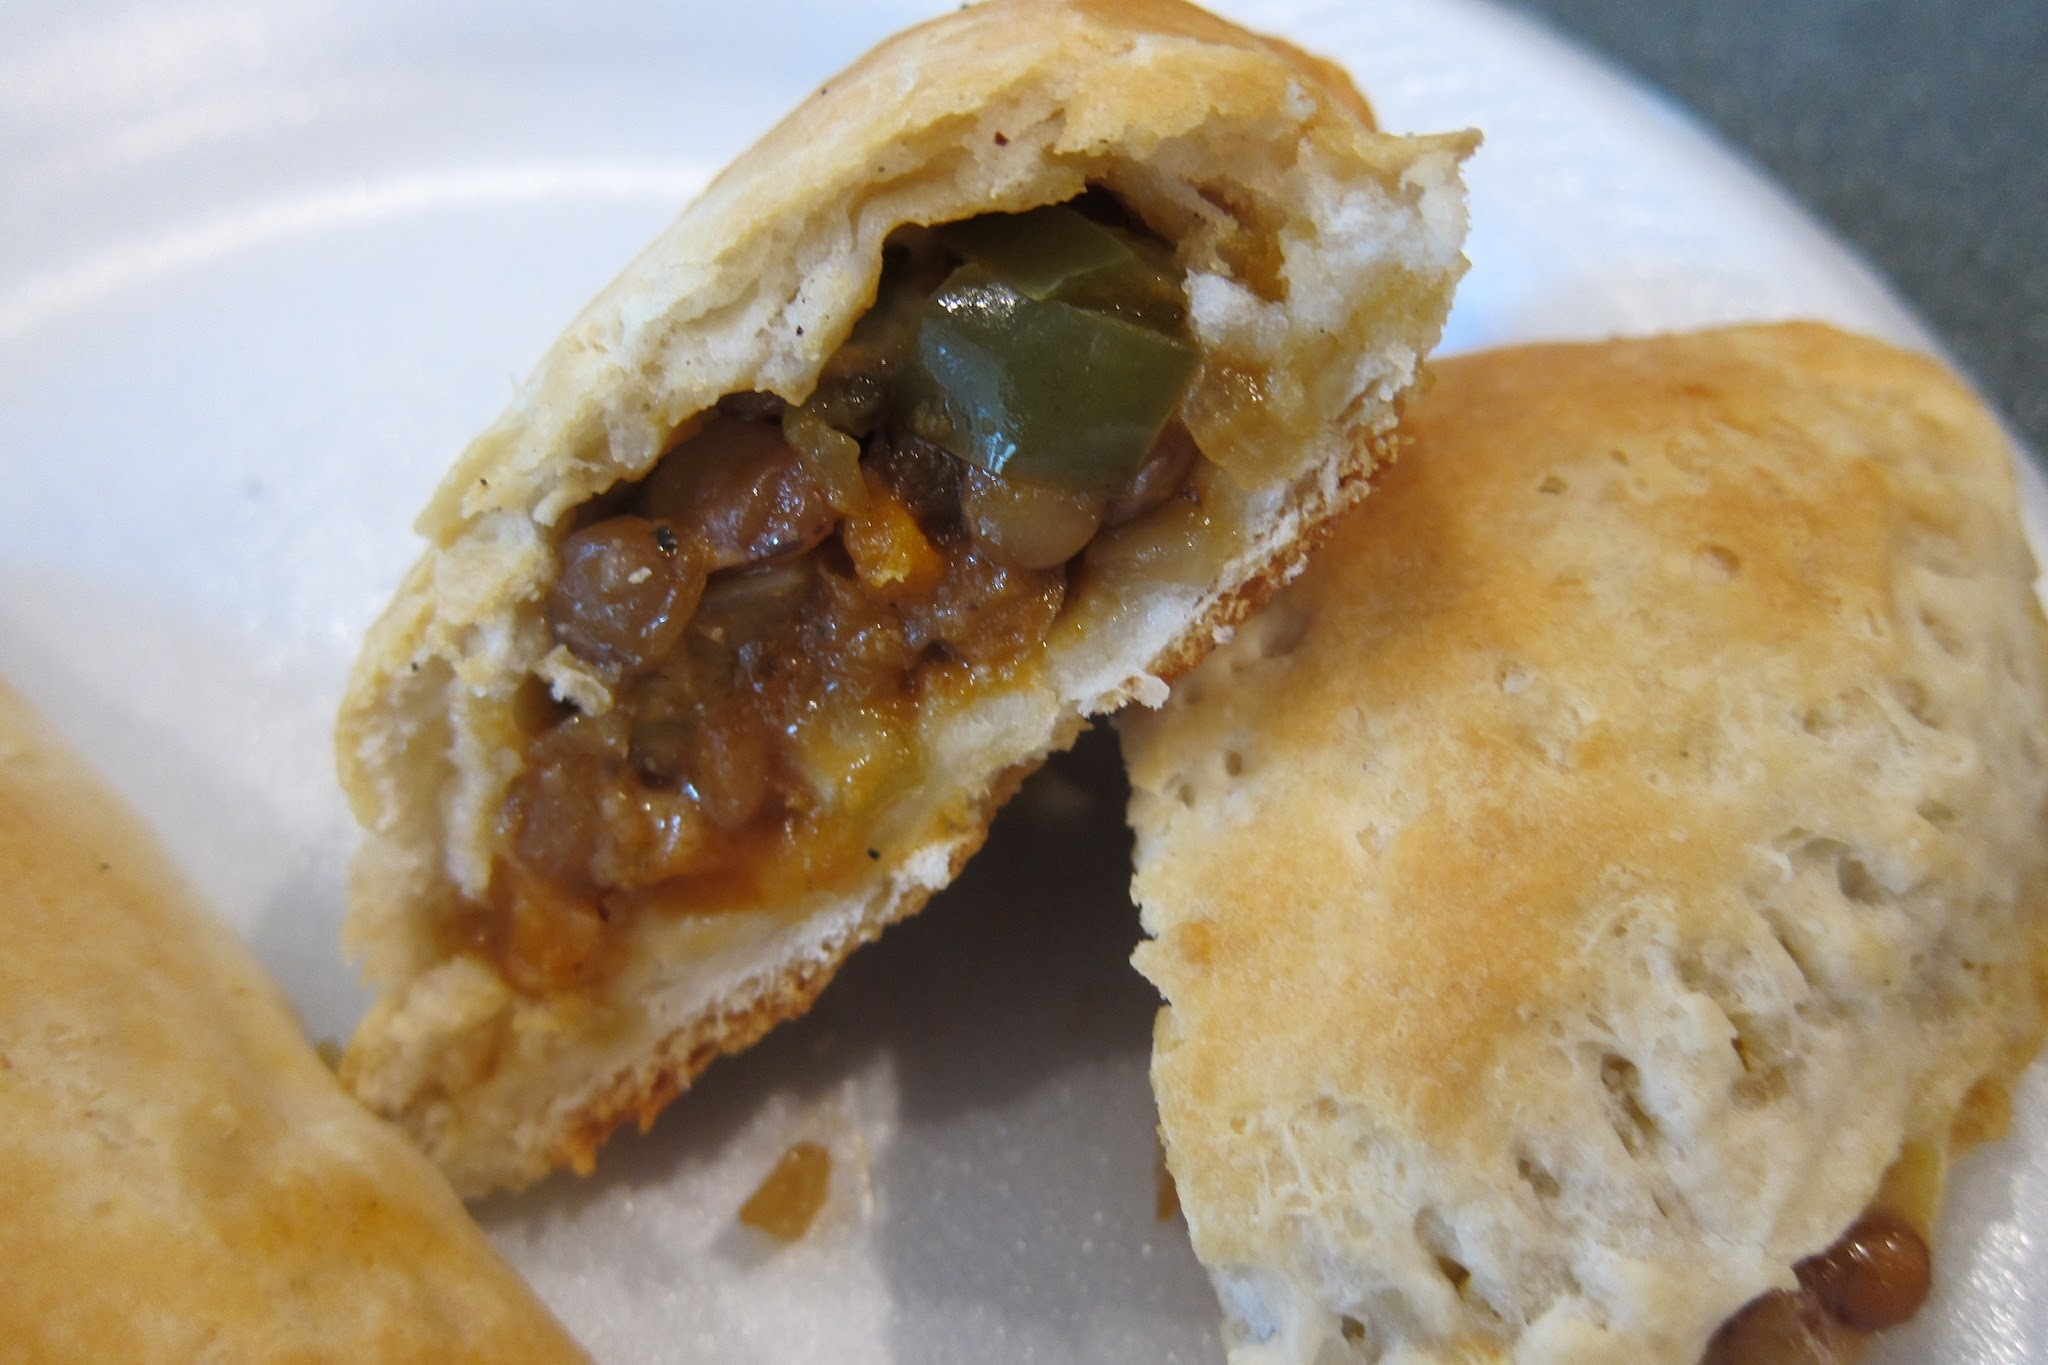 #279 Sloppy Lentil Joe Turnovers/Pies